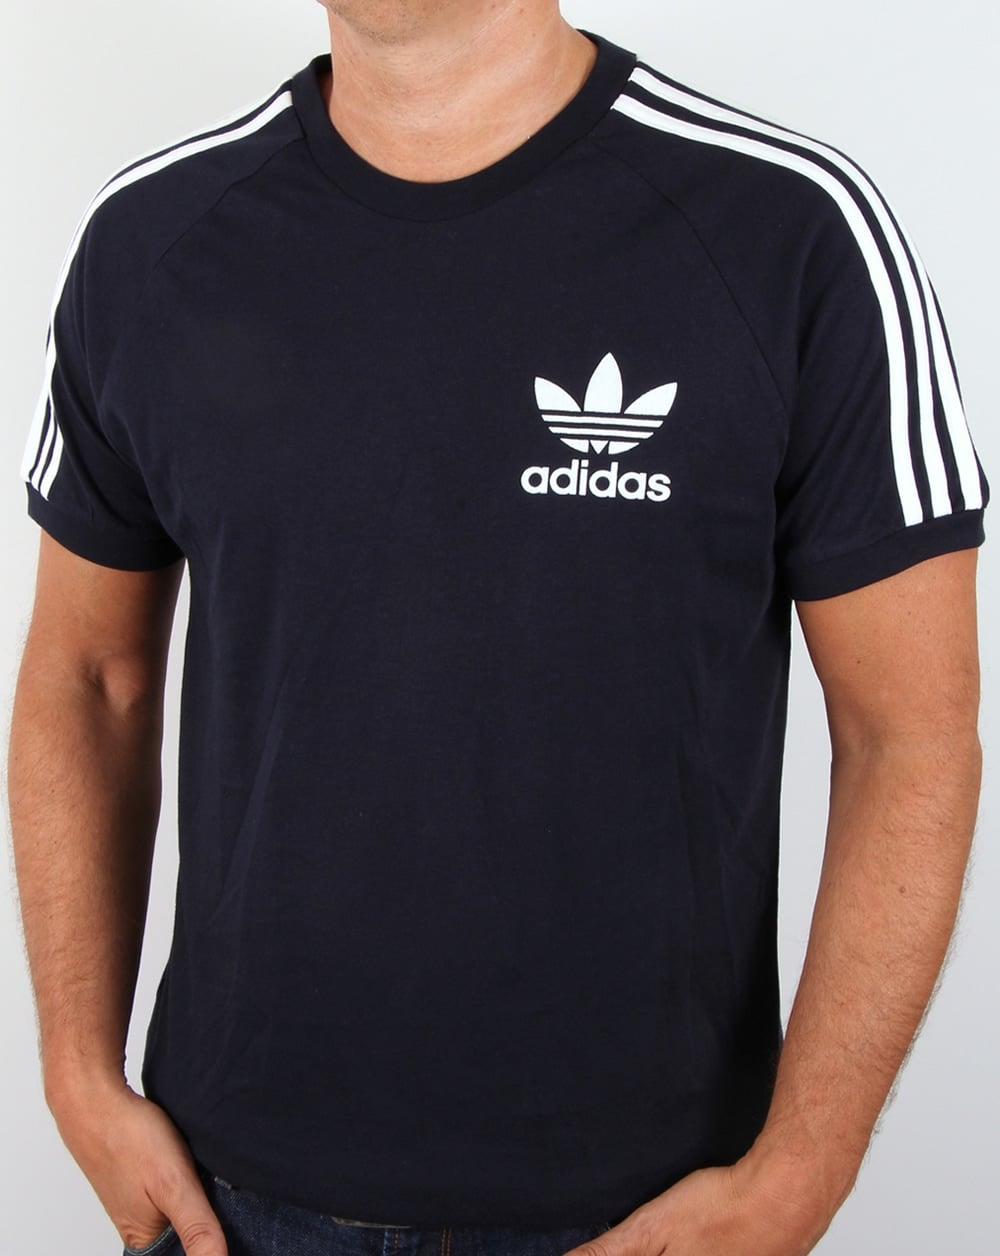 Red adidas tshirt - 5 1